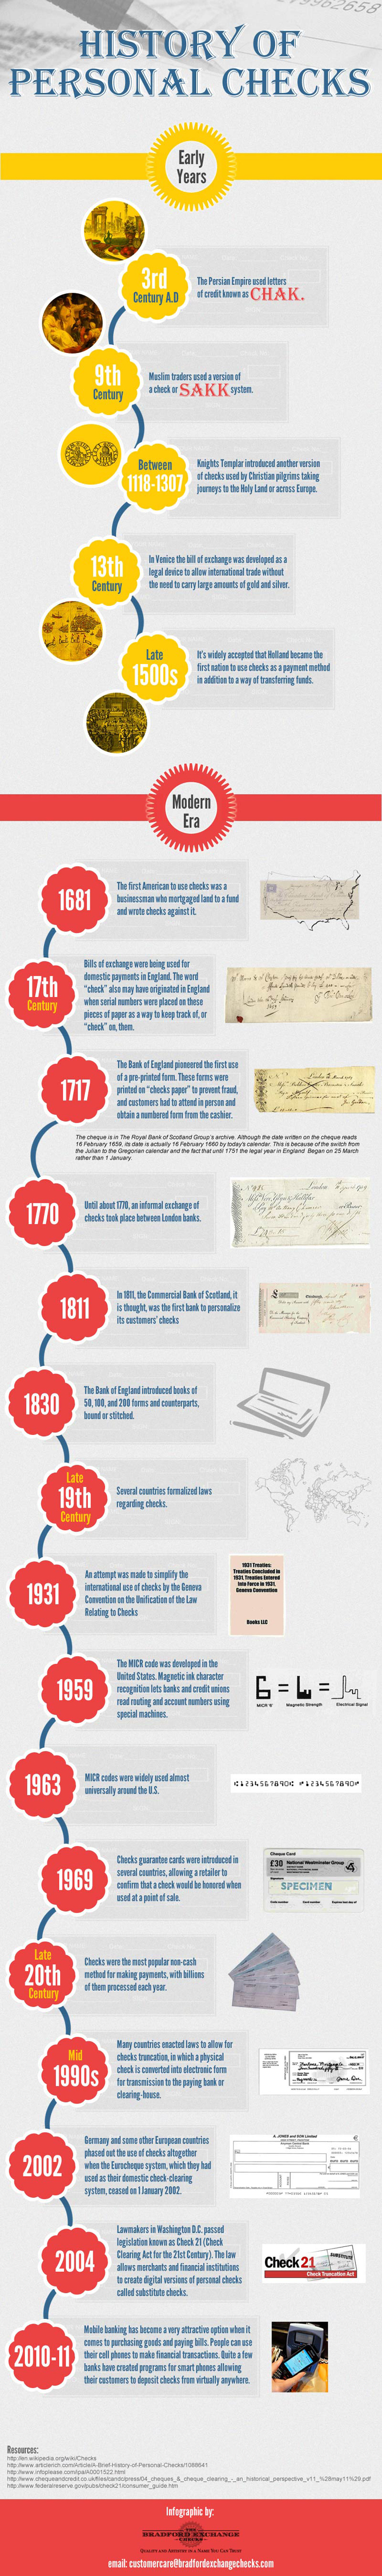 The History of Personal Checks